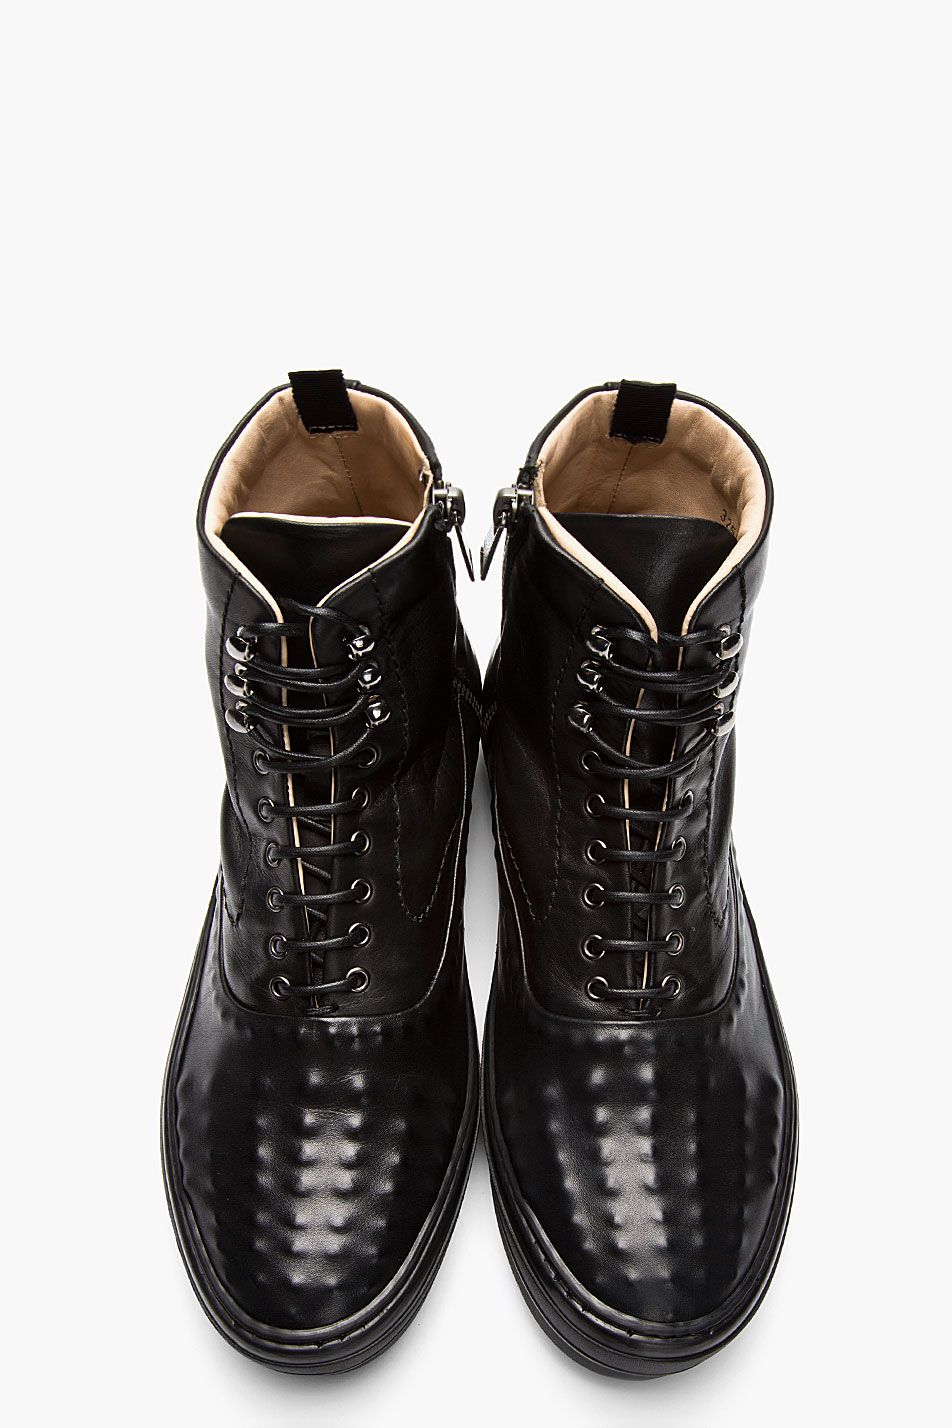 edbff8b664bd Studded Sneakers, Studded Boots, Leather Sneakers, Men S Shoes, Leather  Cover,